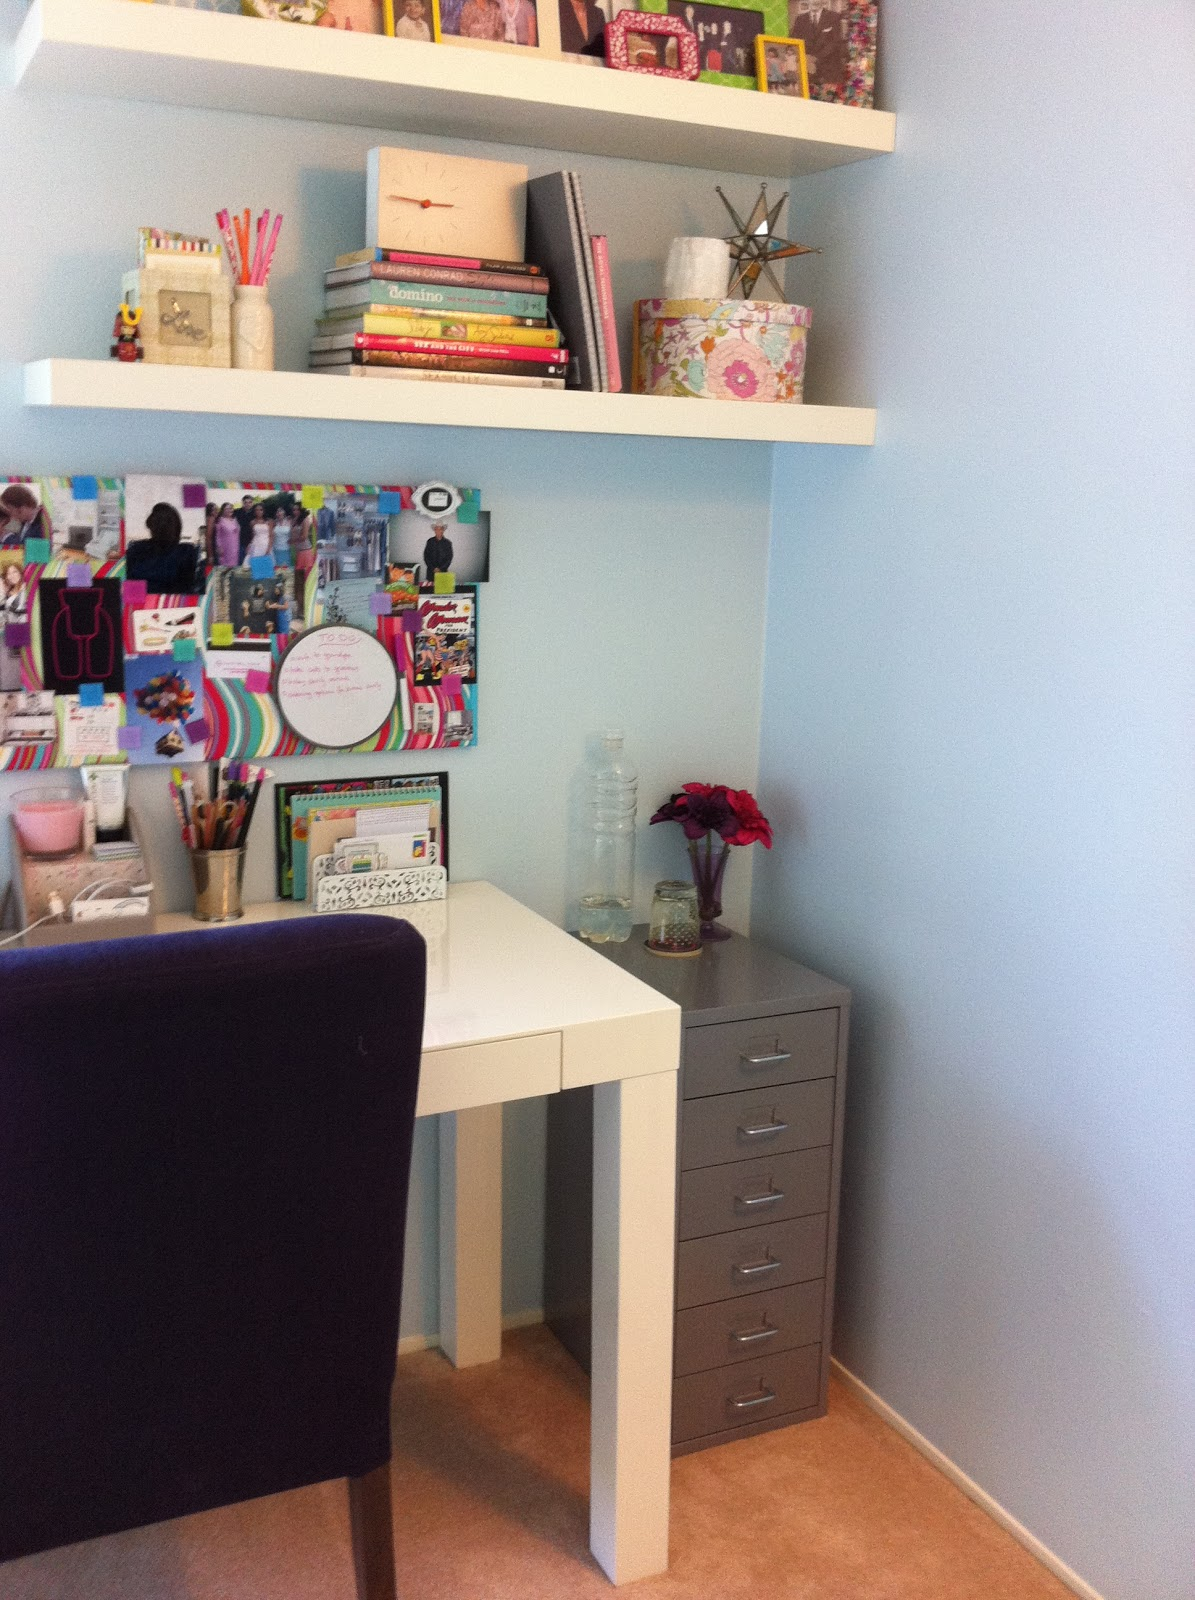 Evy at home helmer 39 s new home - Girly office desk accessories ...